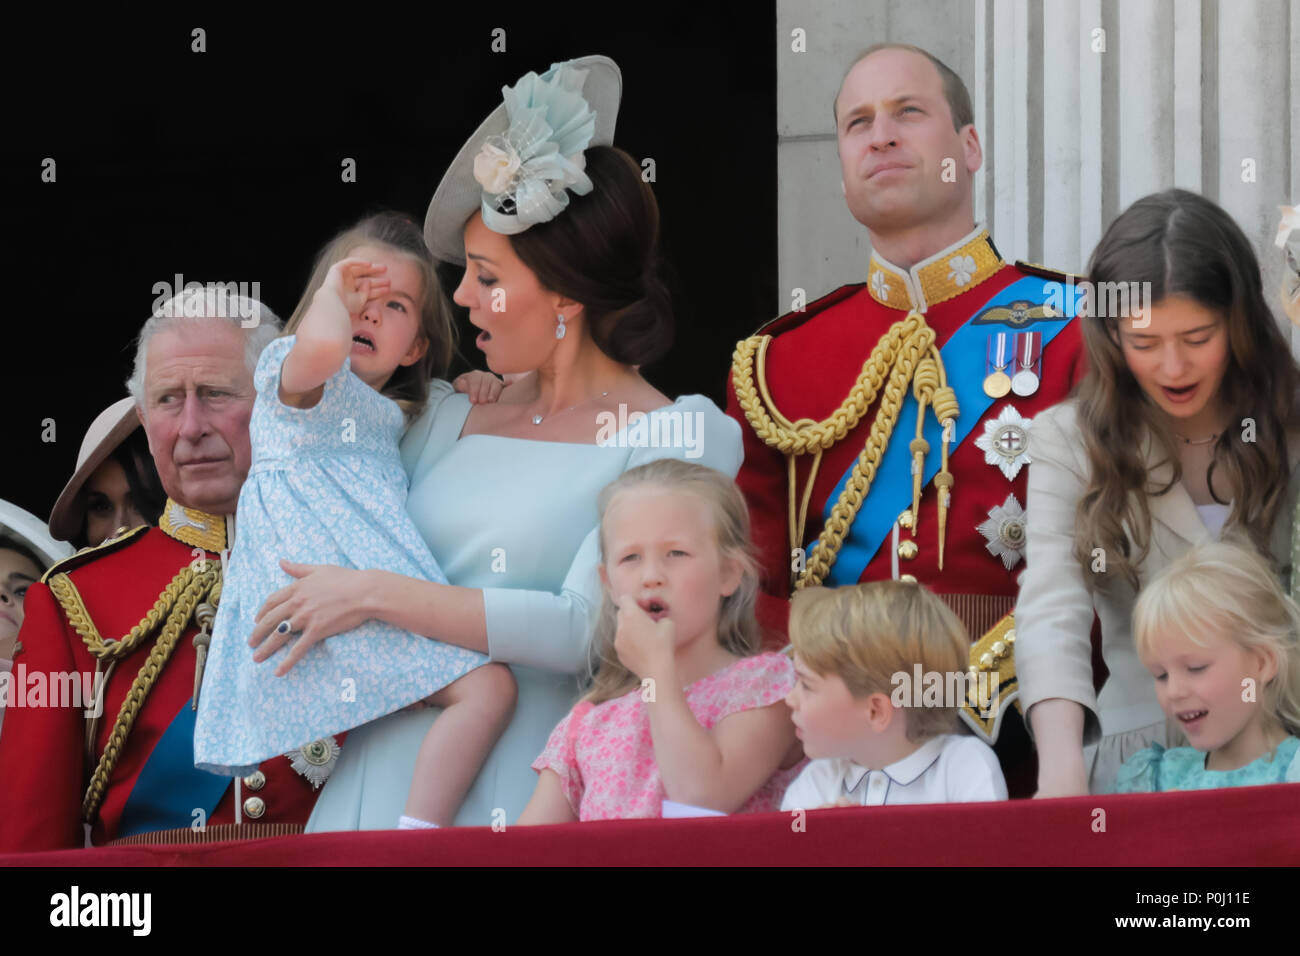 London, UK. 9th June 2018. Prince George looks concerned as his mother, HRH Catherine, Duchess of Cambridge, comforts his tearful sister, Princess Charlotte after she takes a fall on the balcony at Buckingham Palace during the flypast at the end of Trooping the Colour, the Queens Birthday Parade. London Credit: amanda rose/Alamy Live News - Stock Image